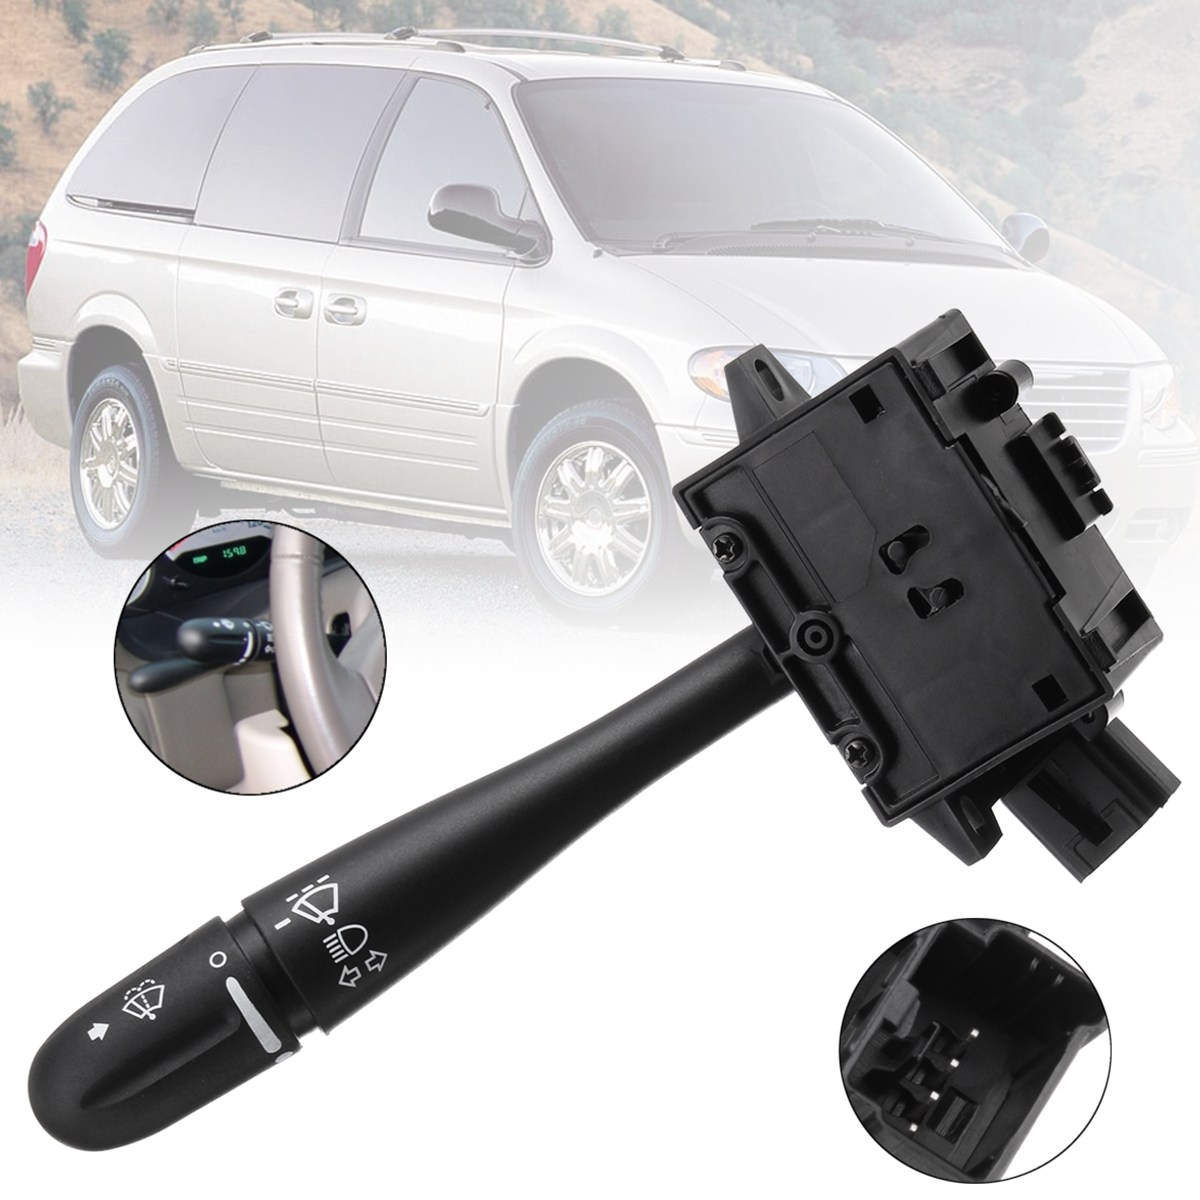 Steering Column Turn Signal Headlamp Switch Wiper Blade Unit For Dodge Grand Caravan Chrysler Voyager 2003 2004 2005 2006 2007 backless lace up midi bodycon dress